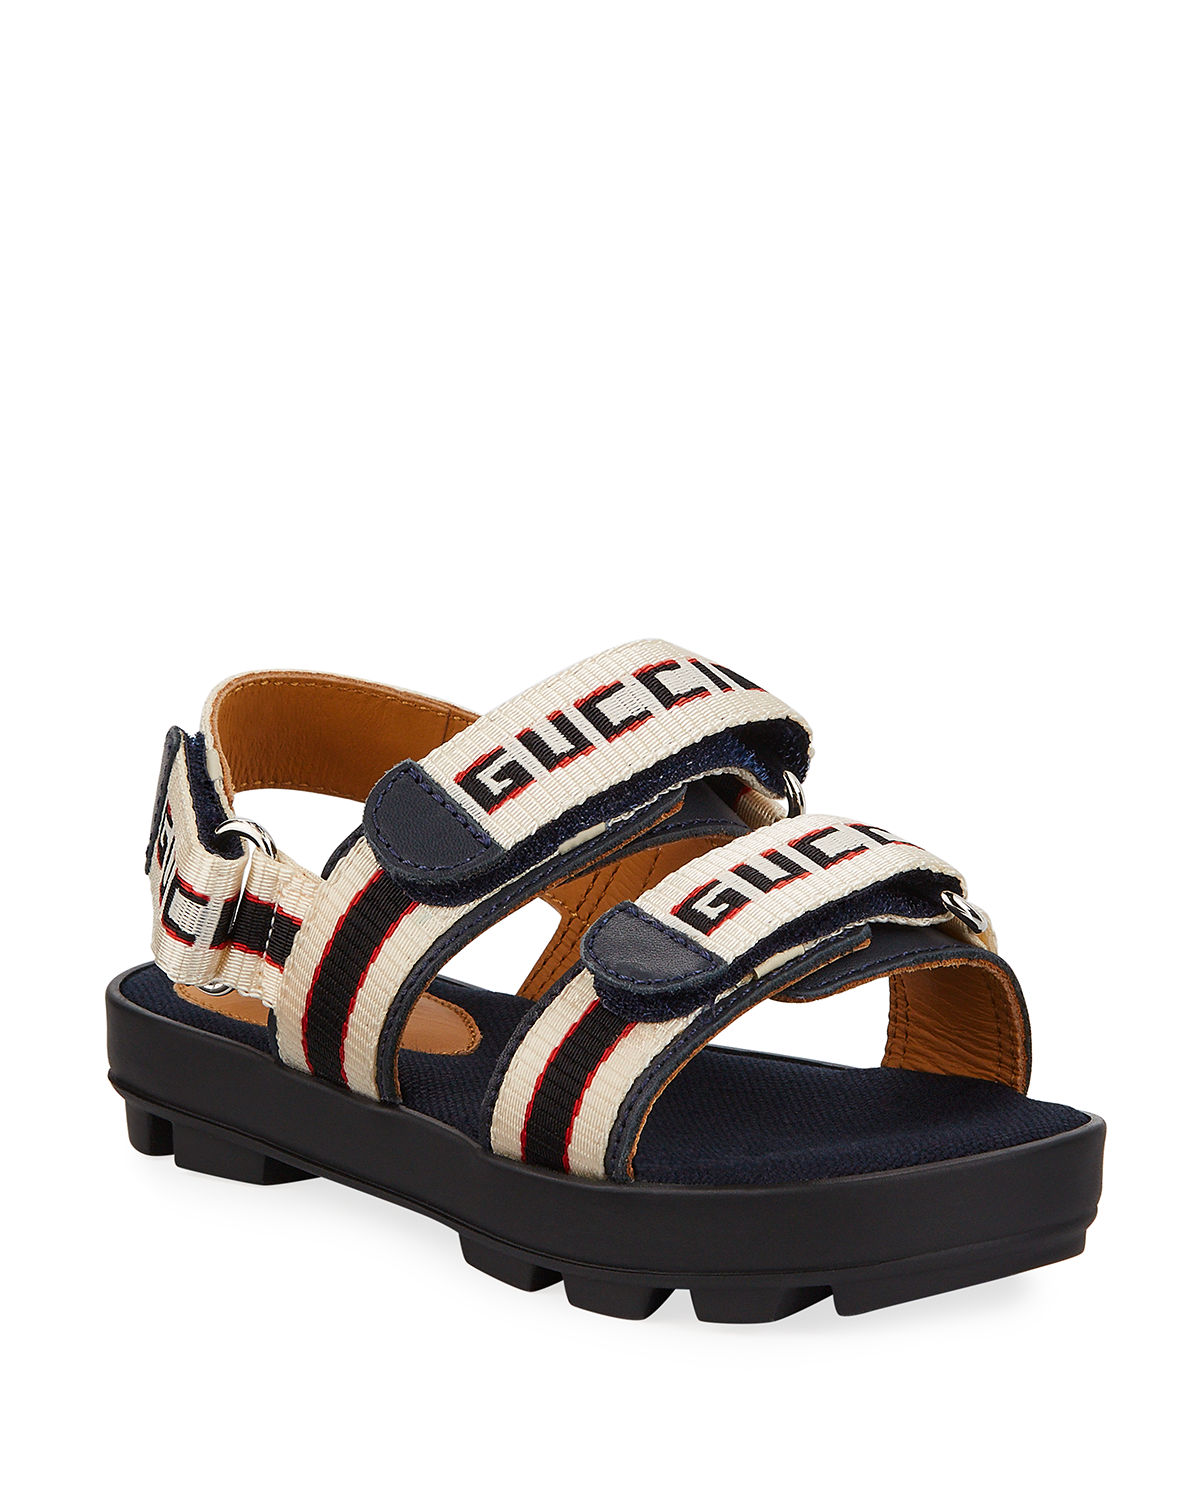 7d4707a16 Gucci Sam Web Logo Grip-Strap Sandals